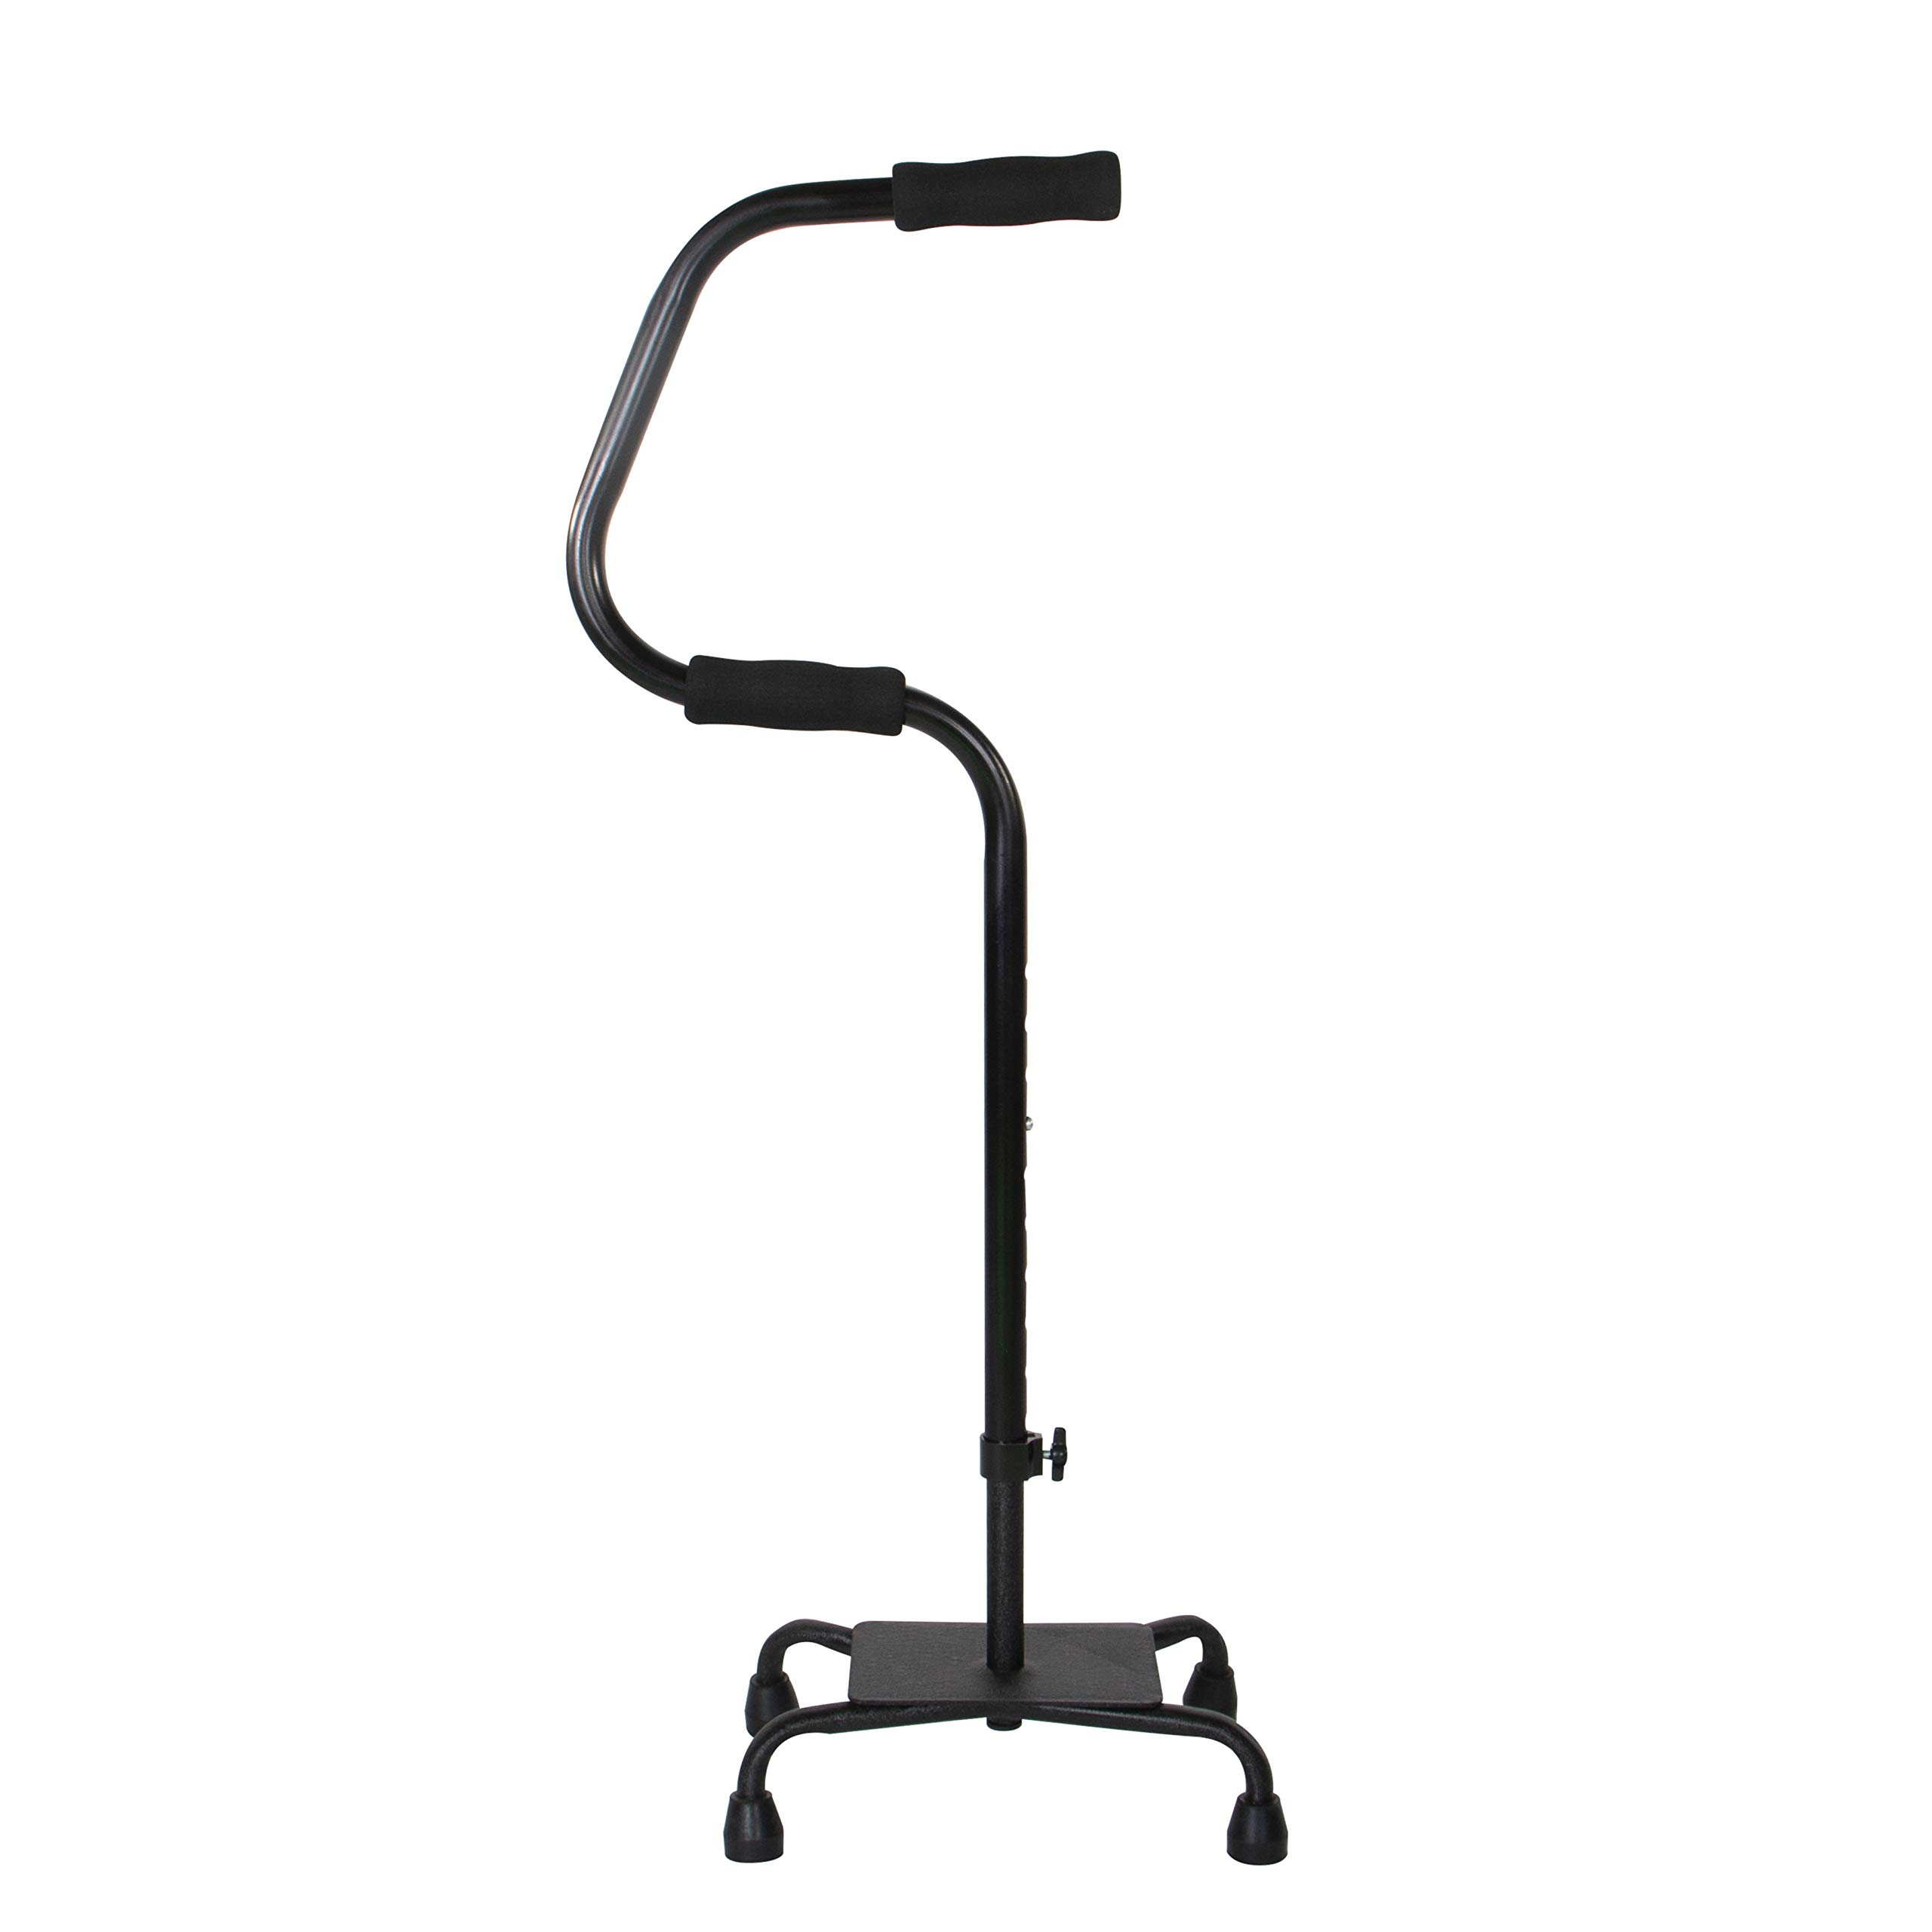 Easy Riser Quad Cane, Two Handle, Adjustable Height Mobility Aid, Standing Stability Base, Black, Large Base by PCP